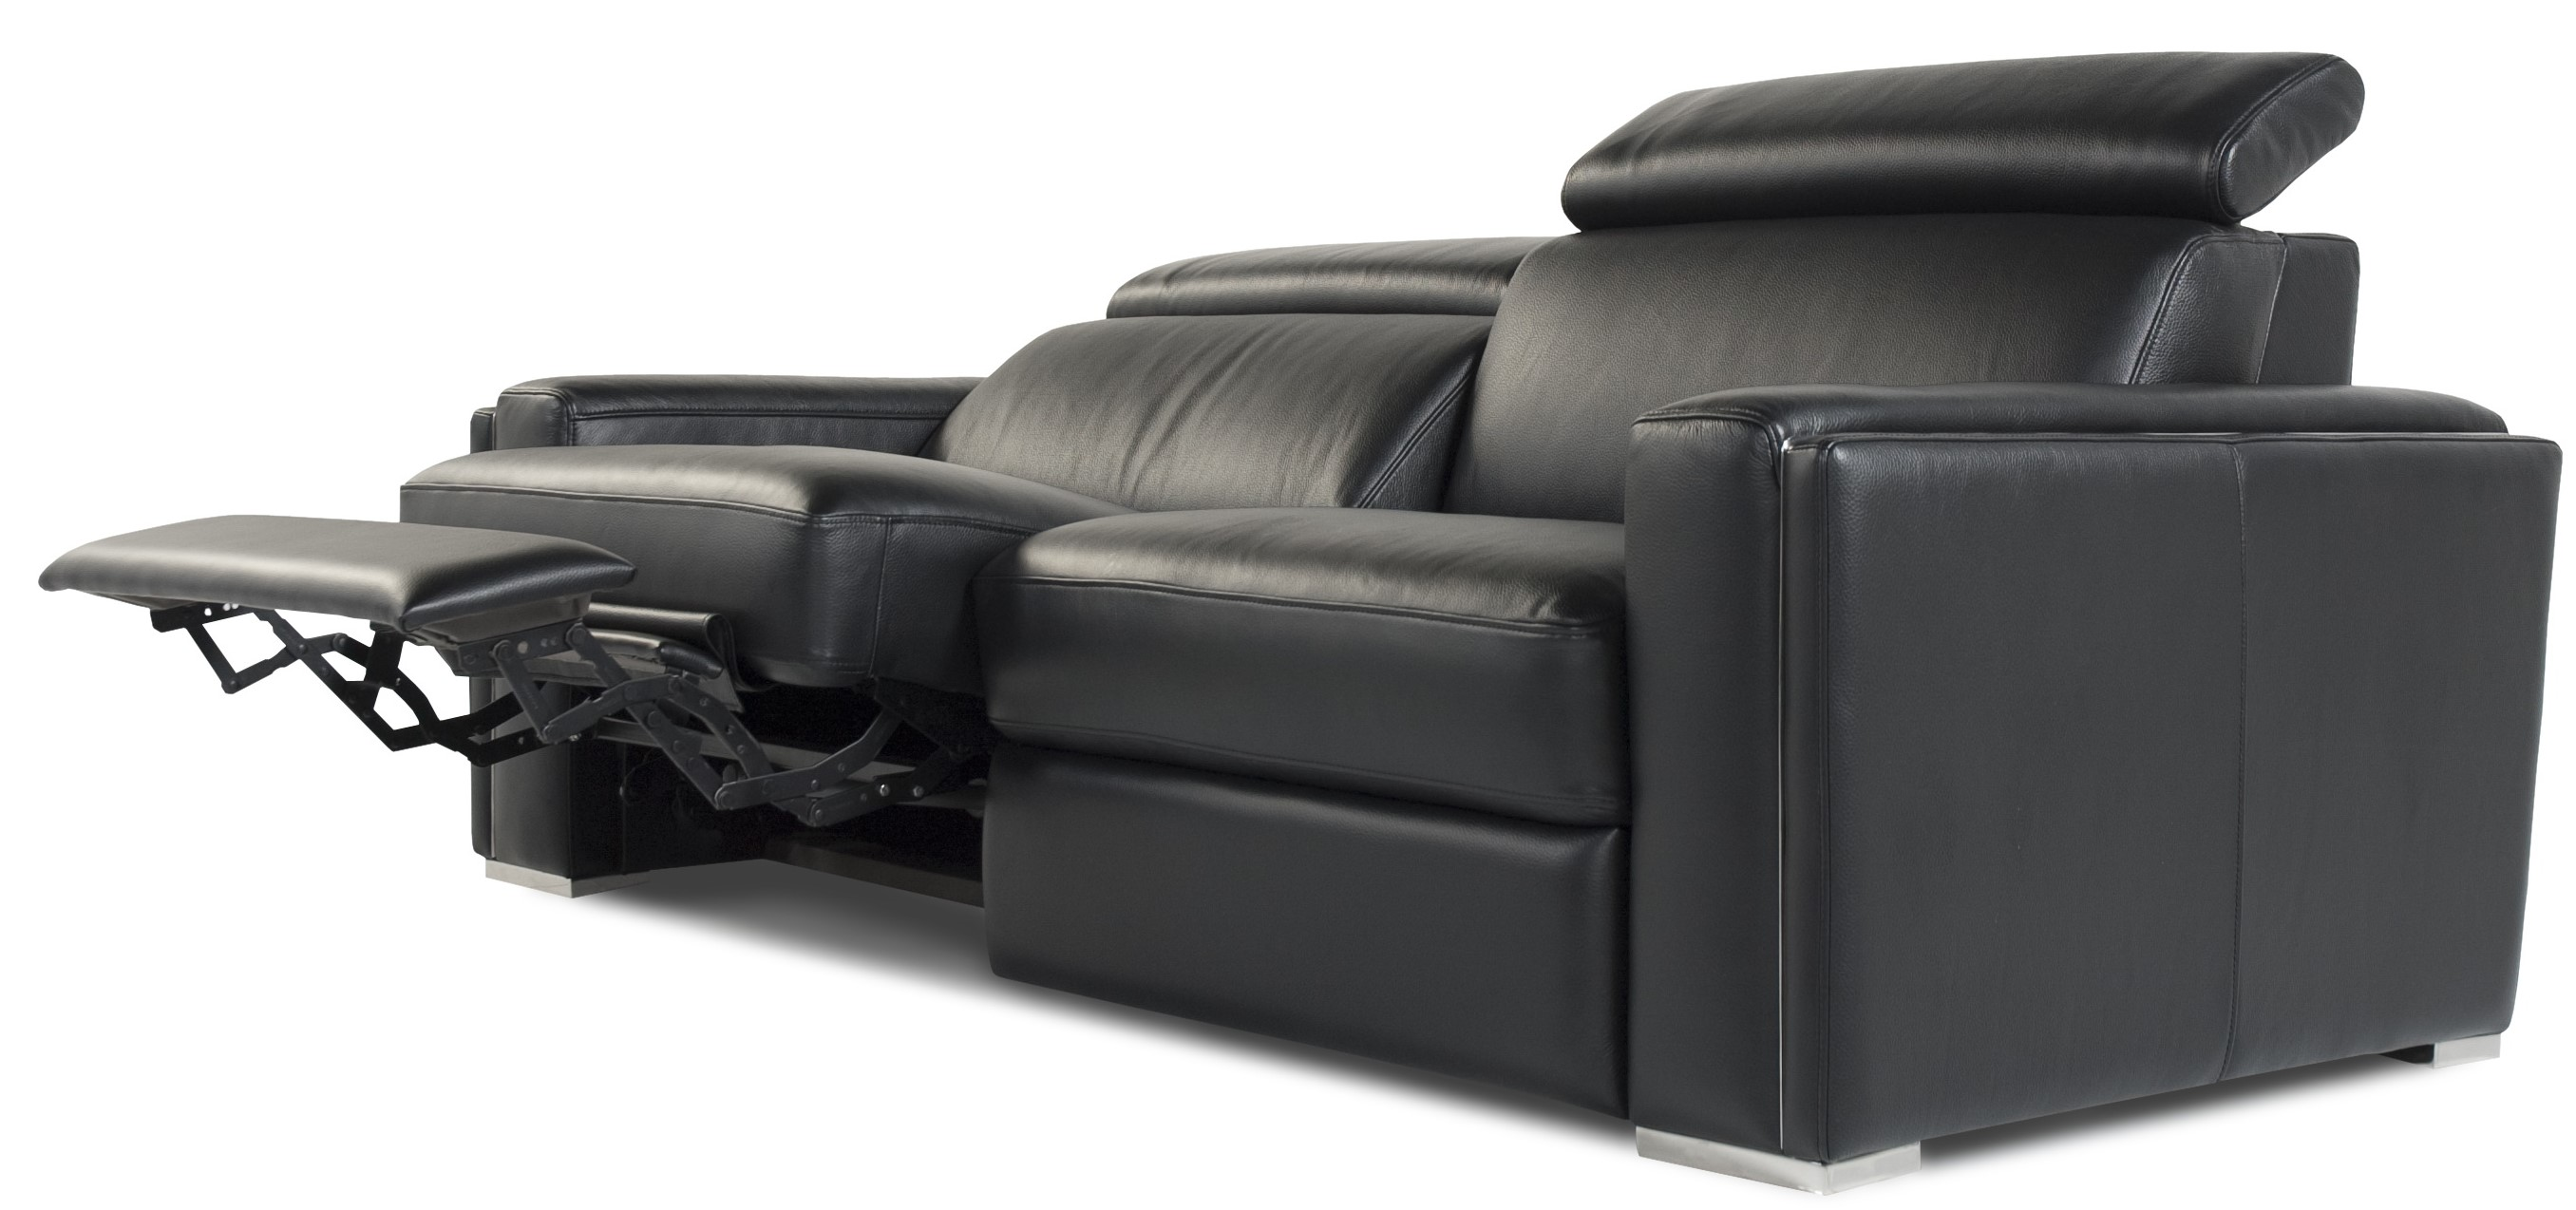 Ellie 1184 Leather Reclining Sofa Collection